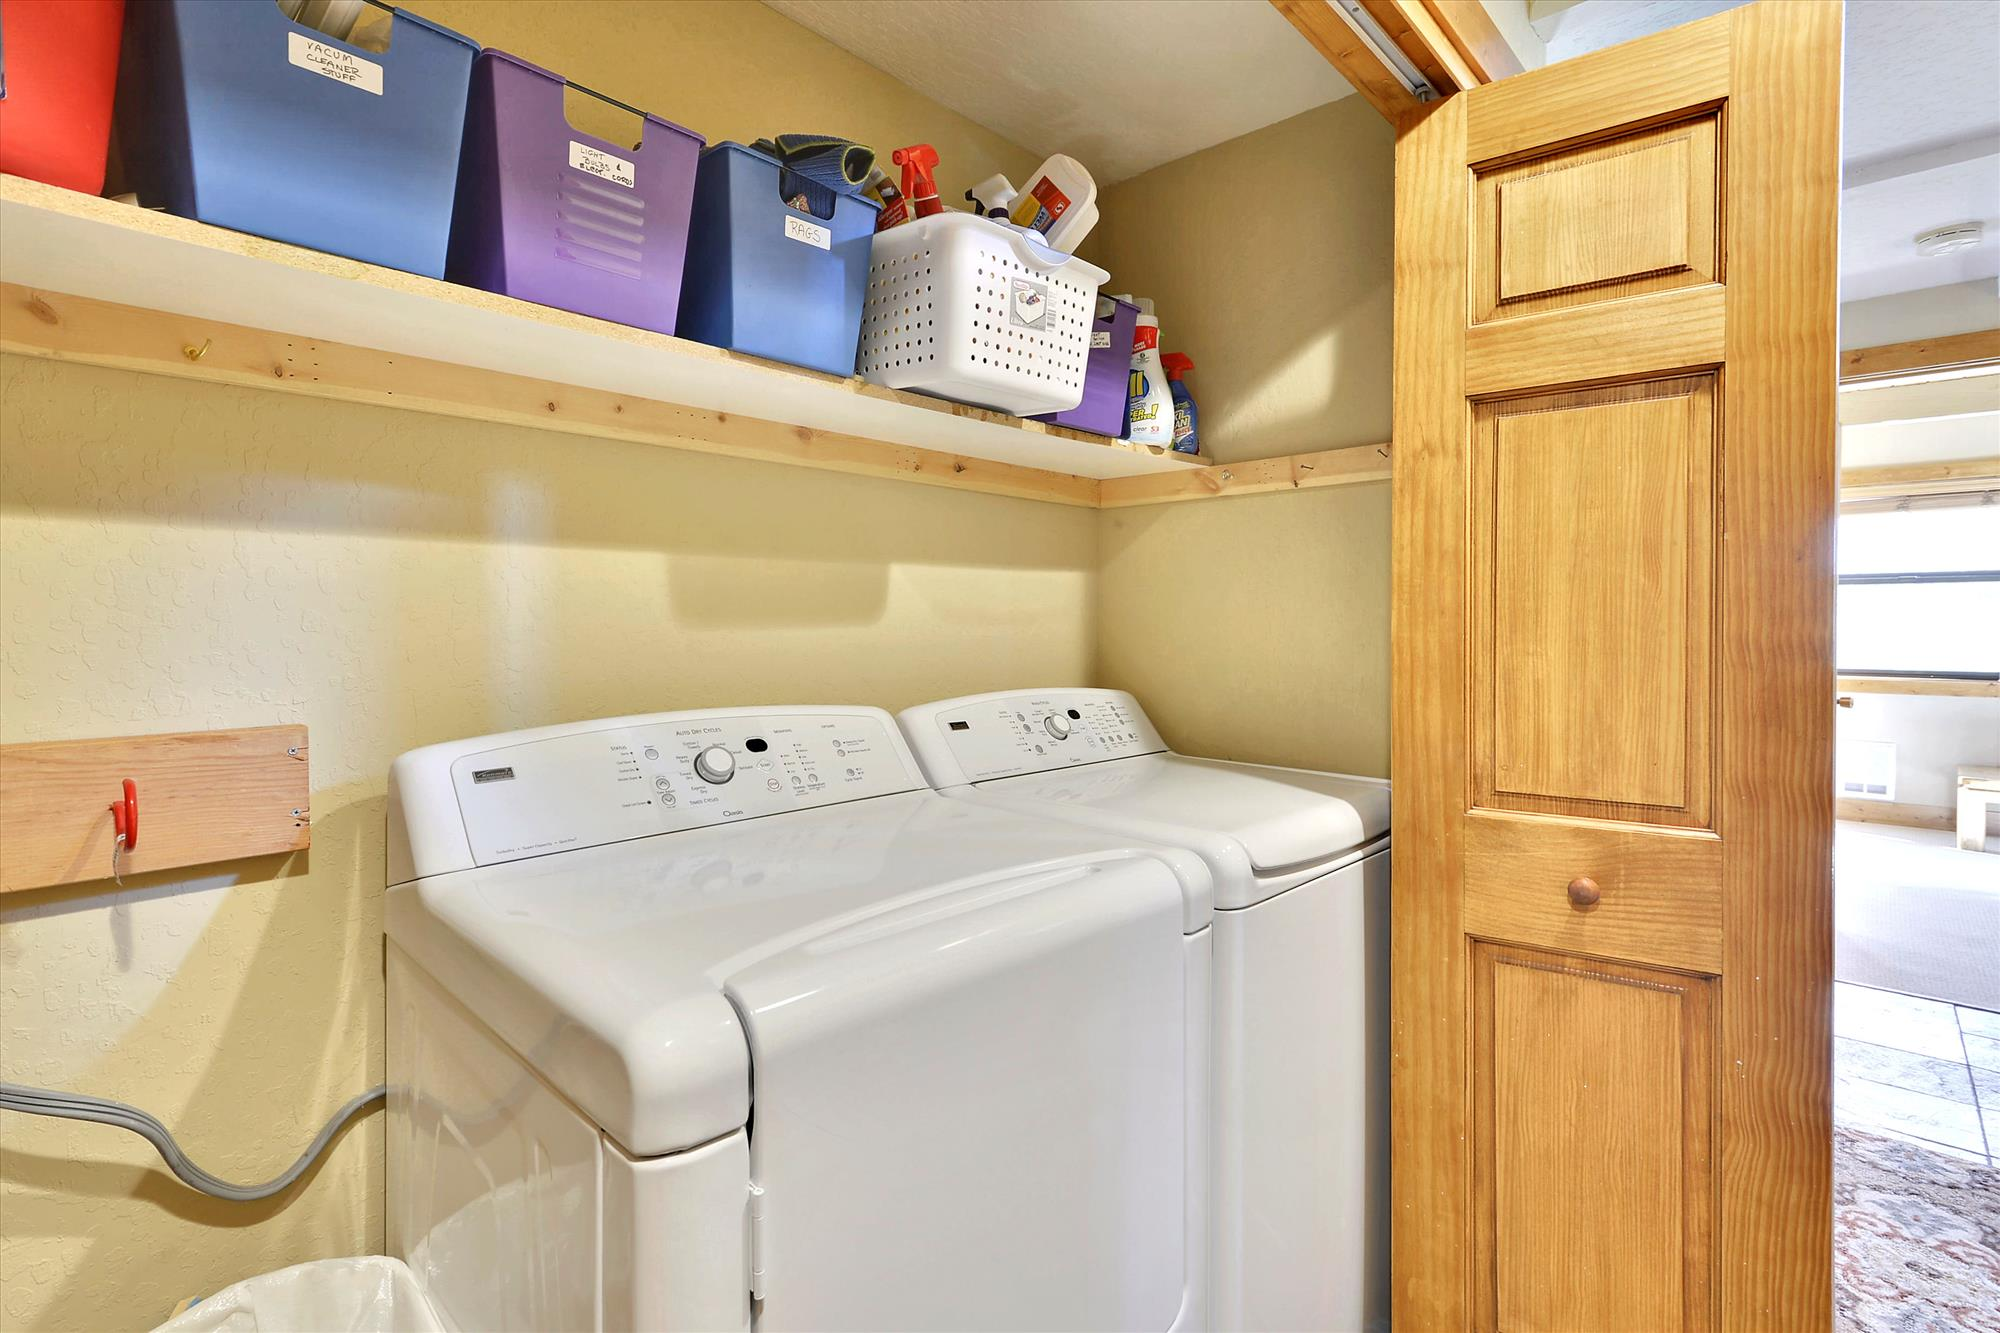 Entry Level,Washer Dryer,